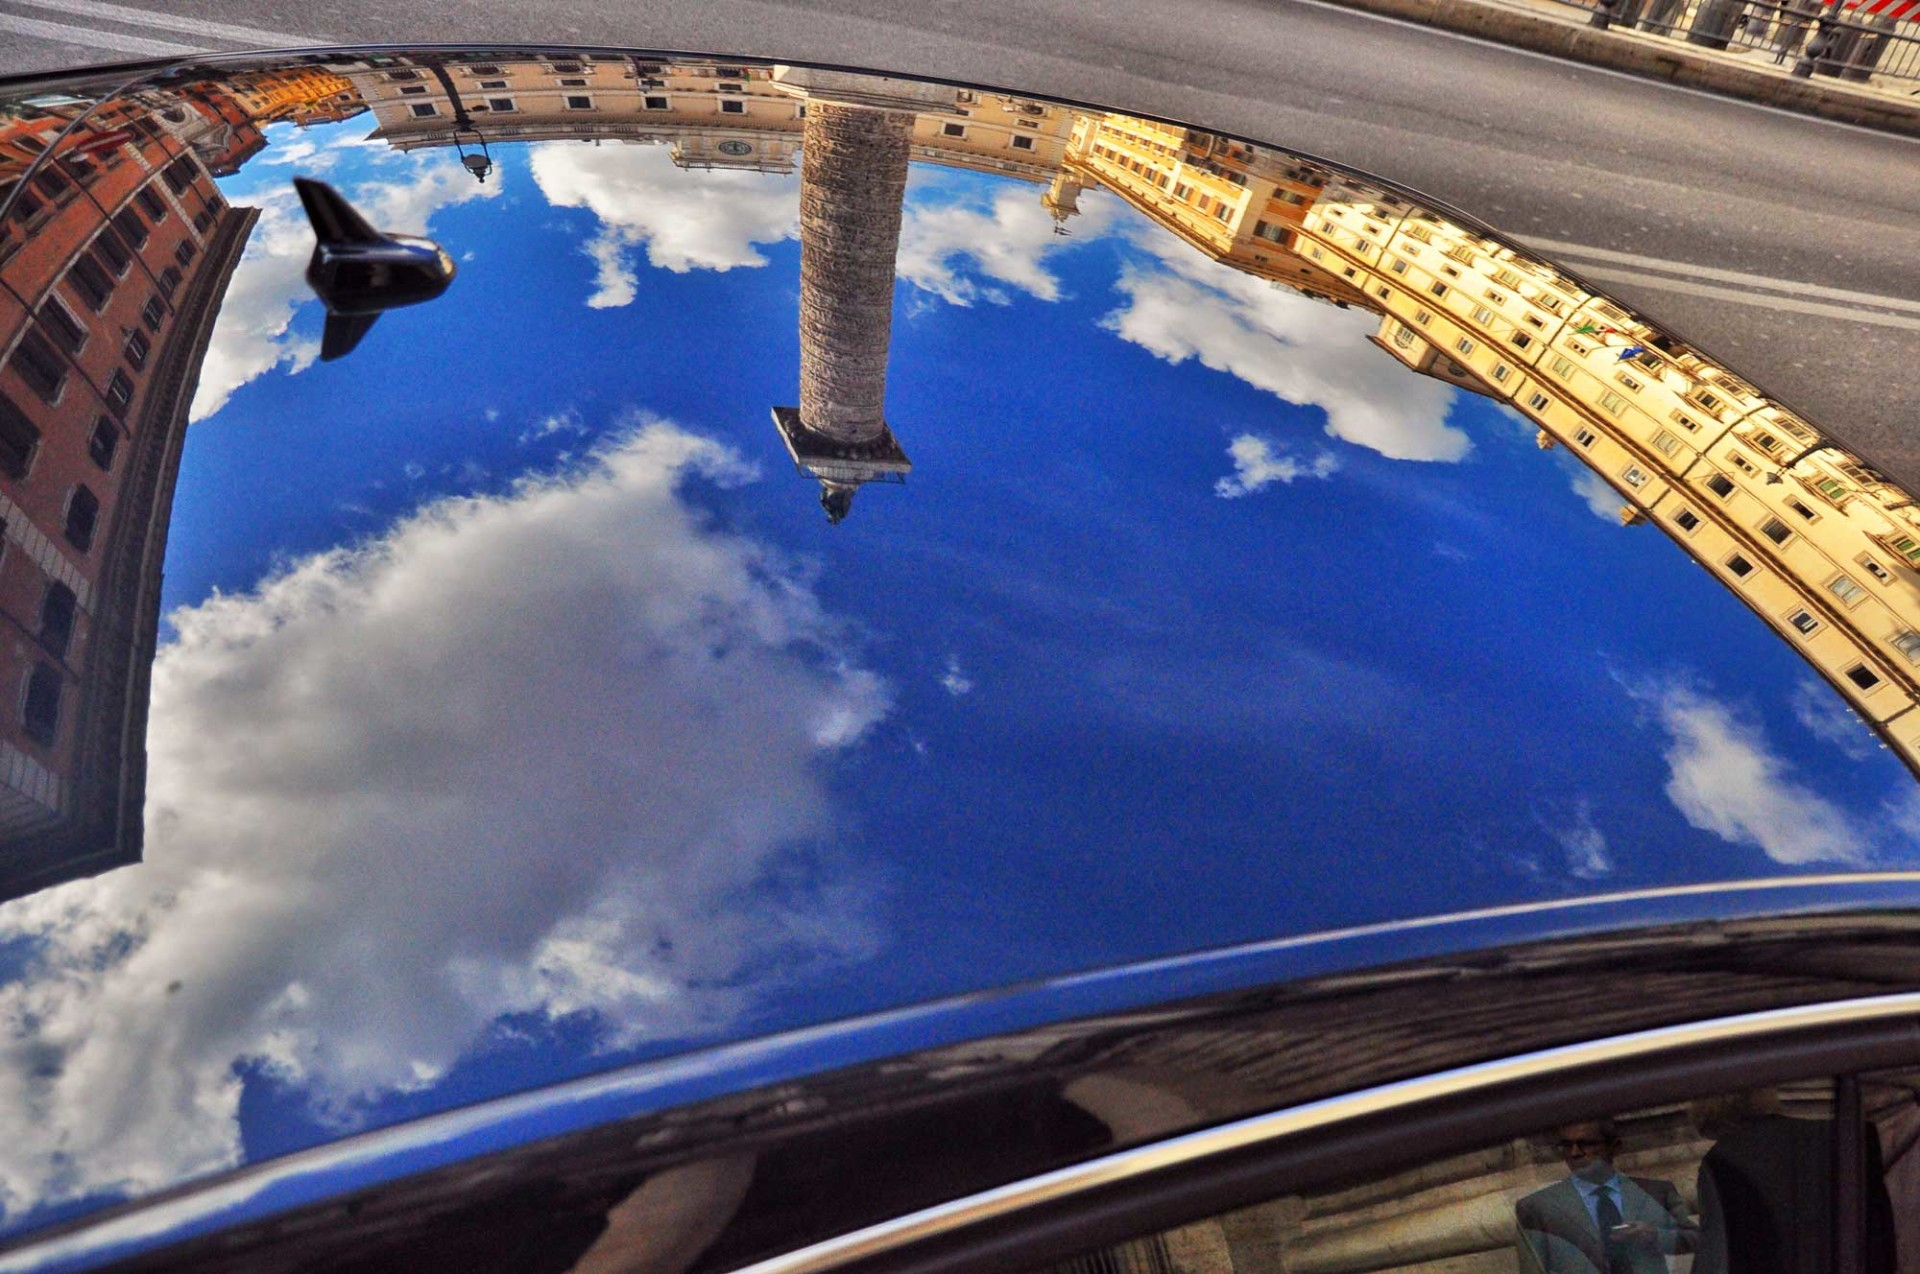 Reflex on blu car - Chigi palace - Rome - Italy